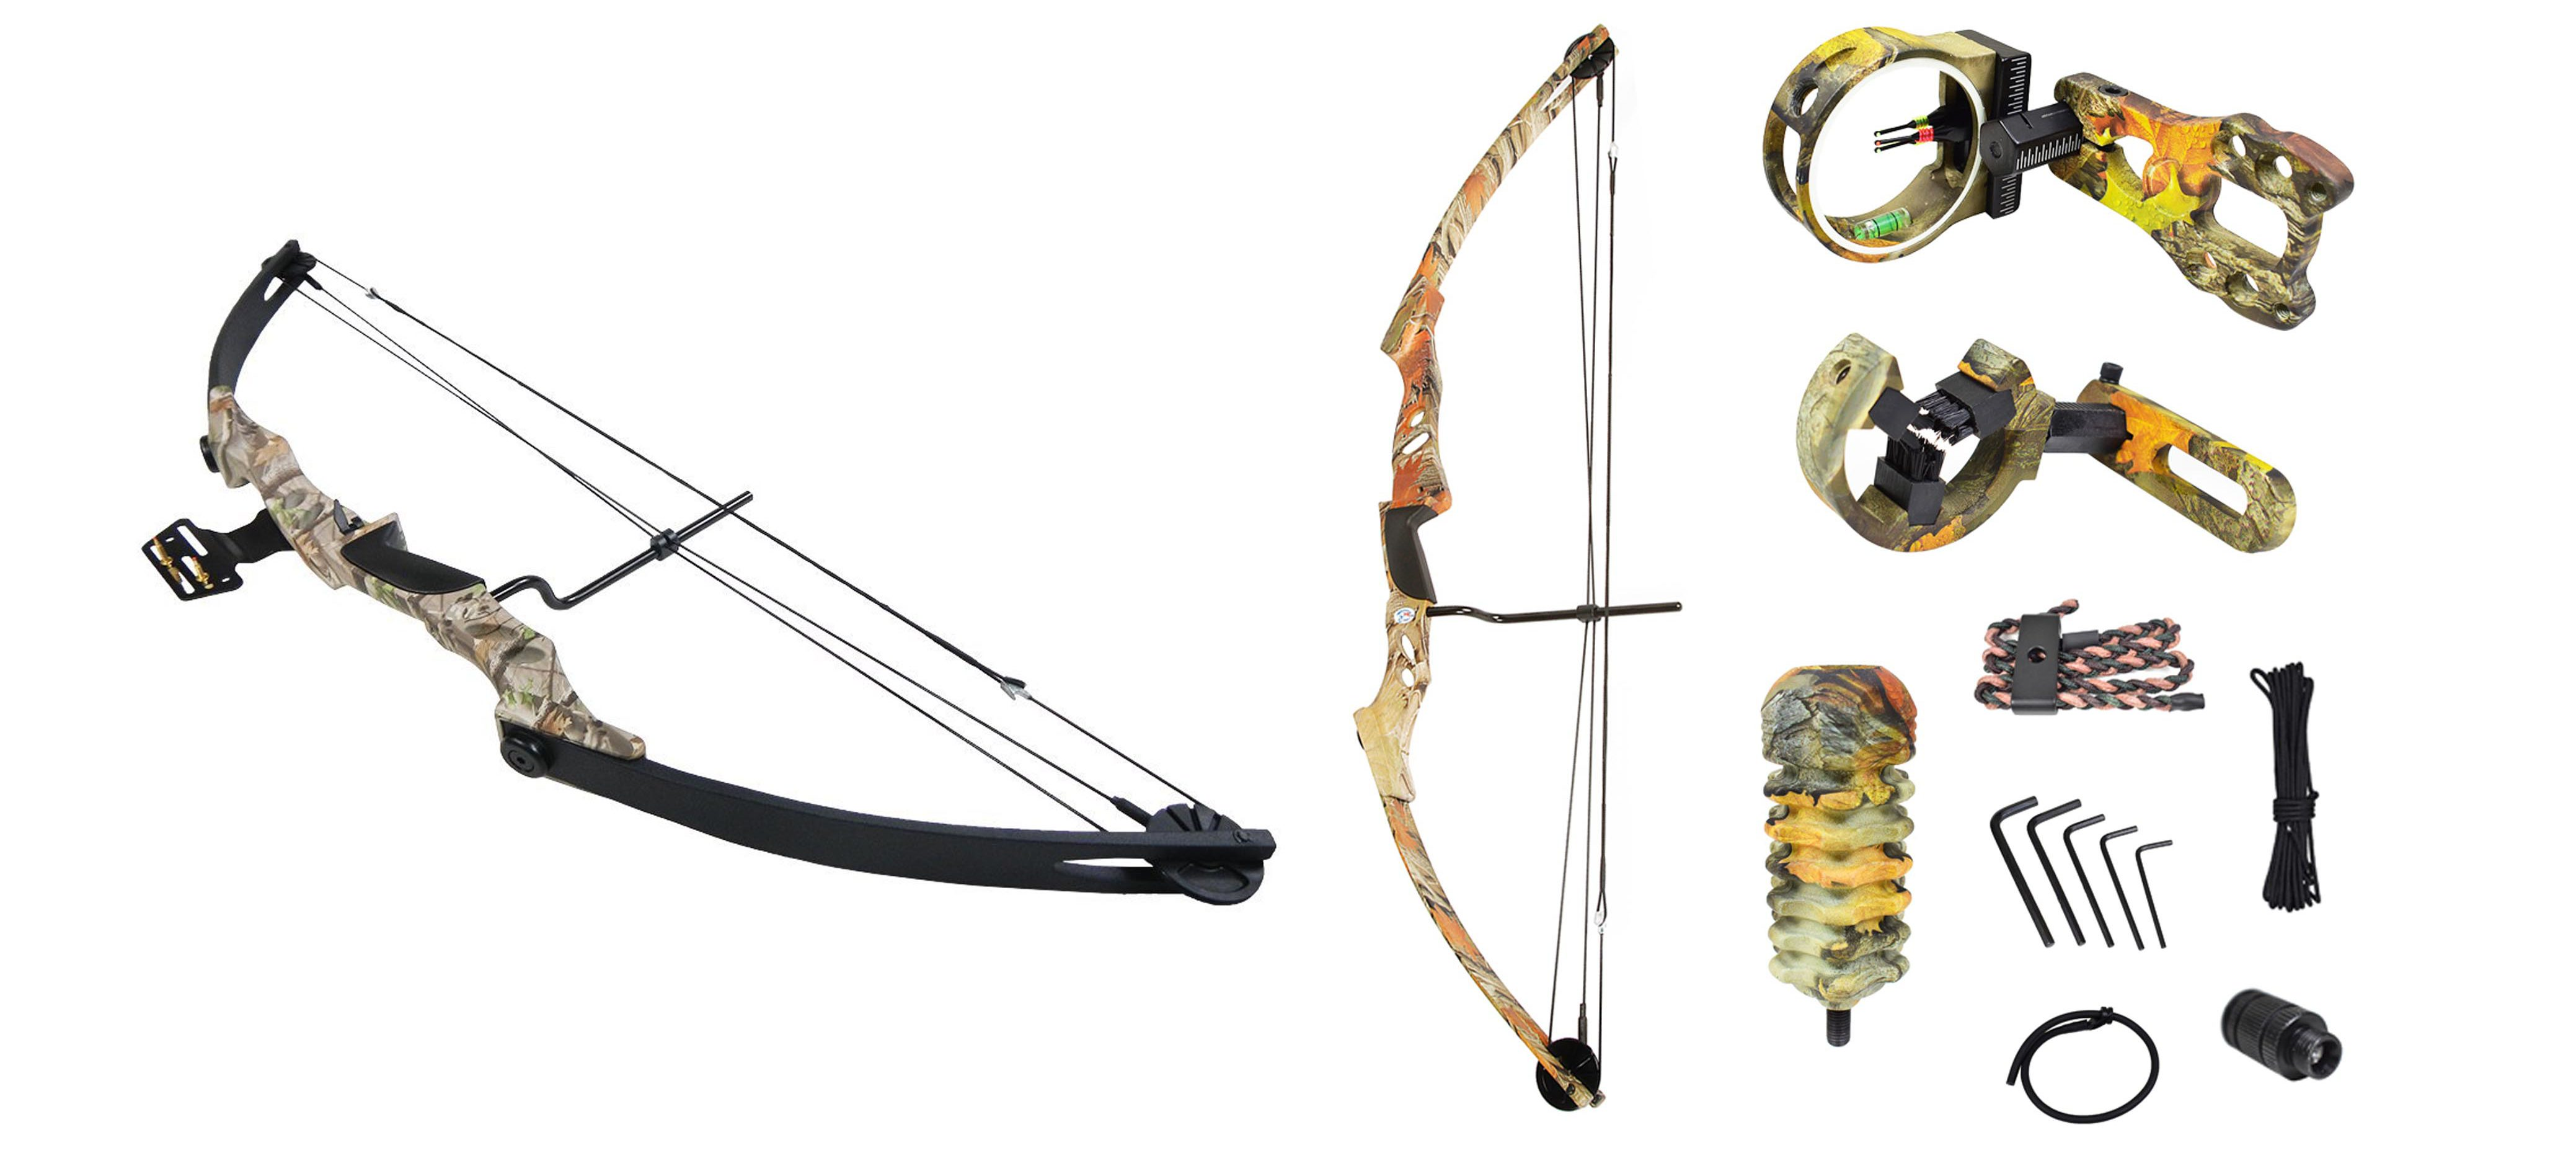 iGlow 55lb Black/Sliver/Camouflage Camo Archery Hunting Compound Bow